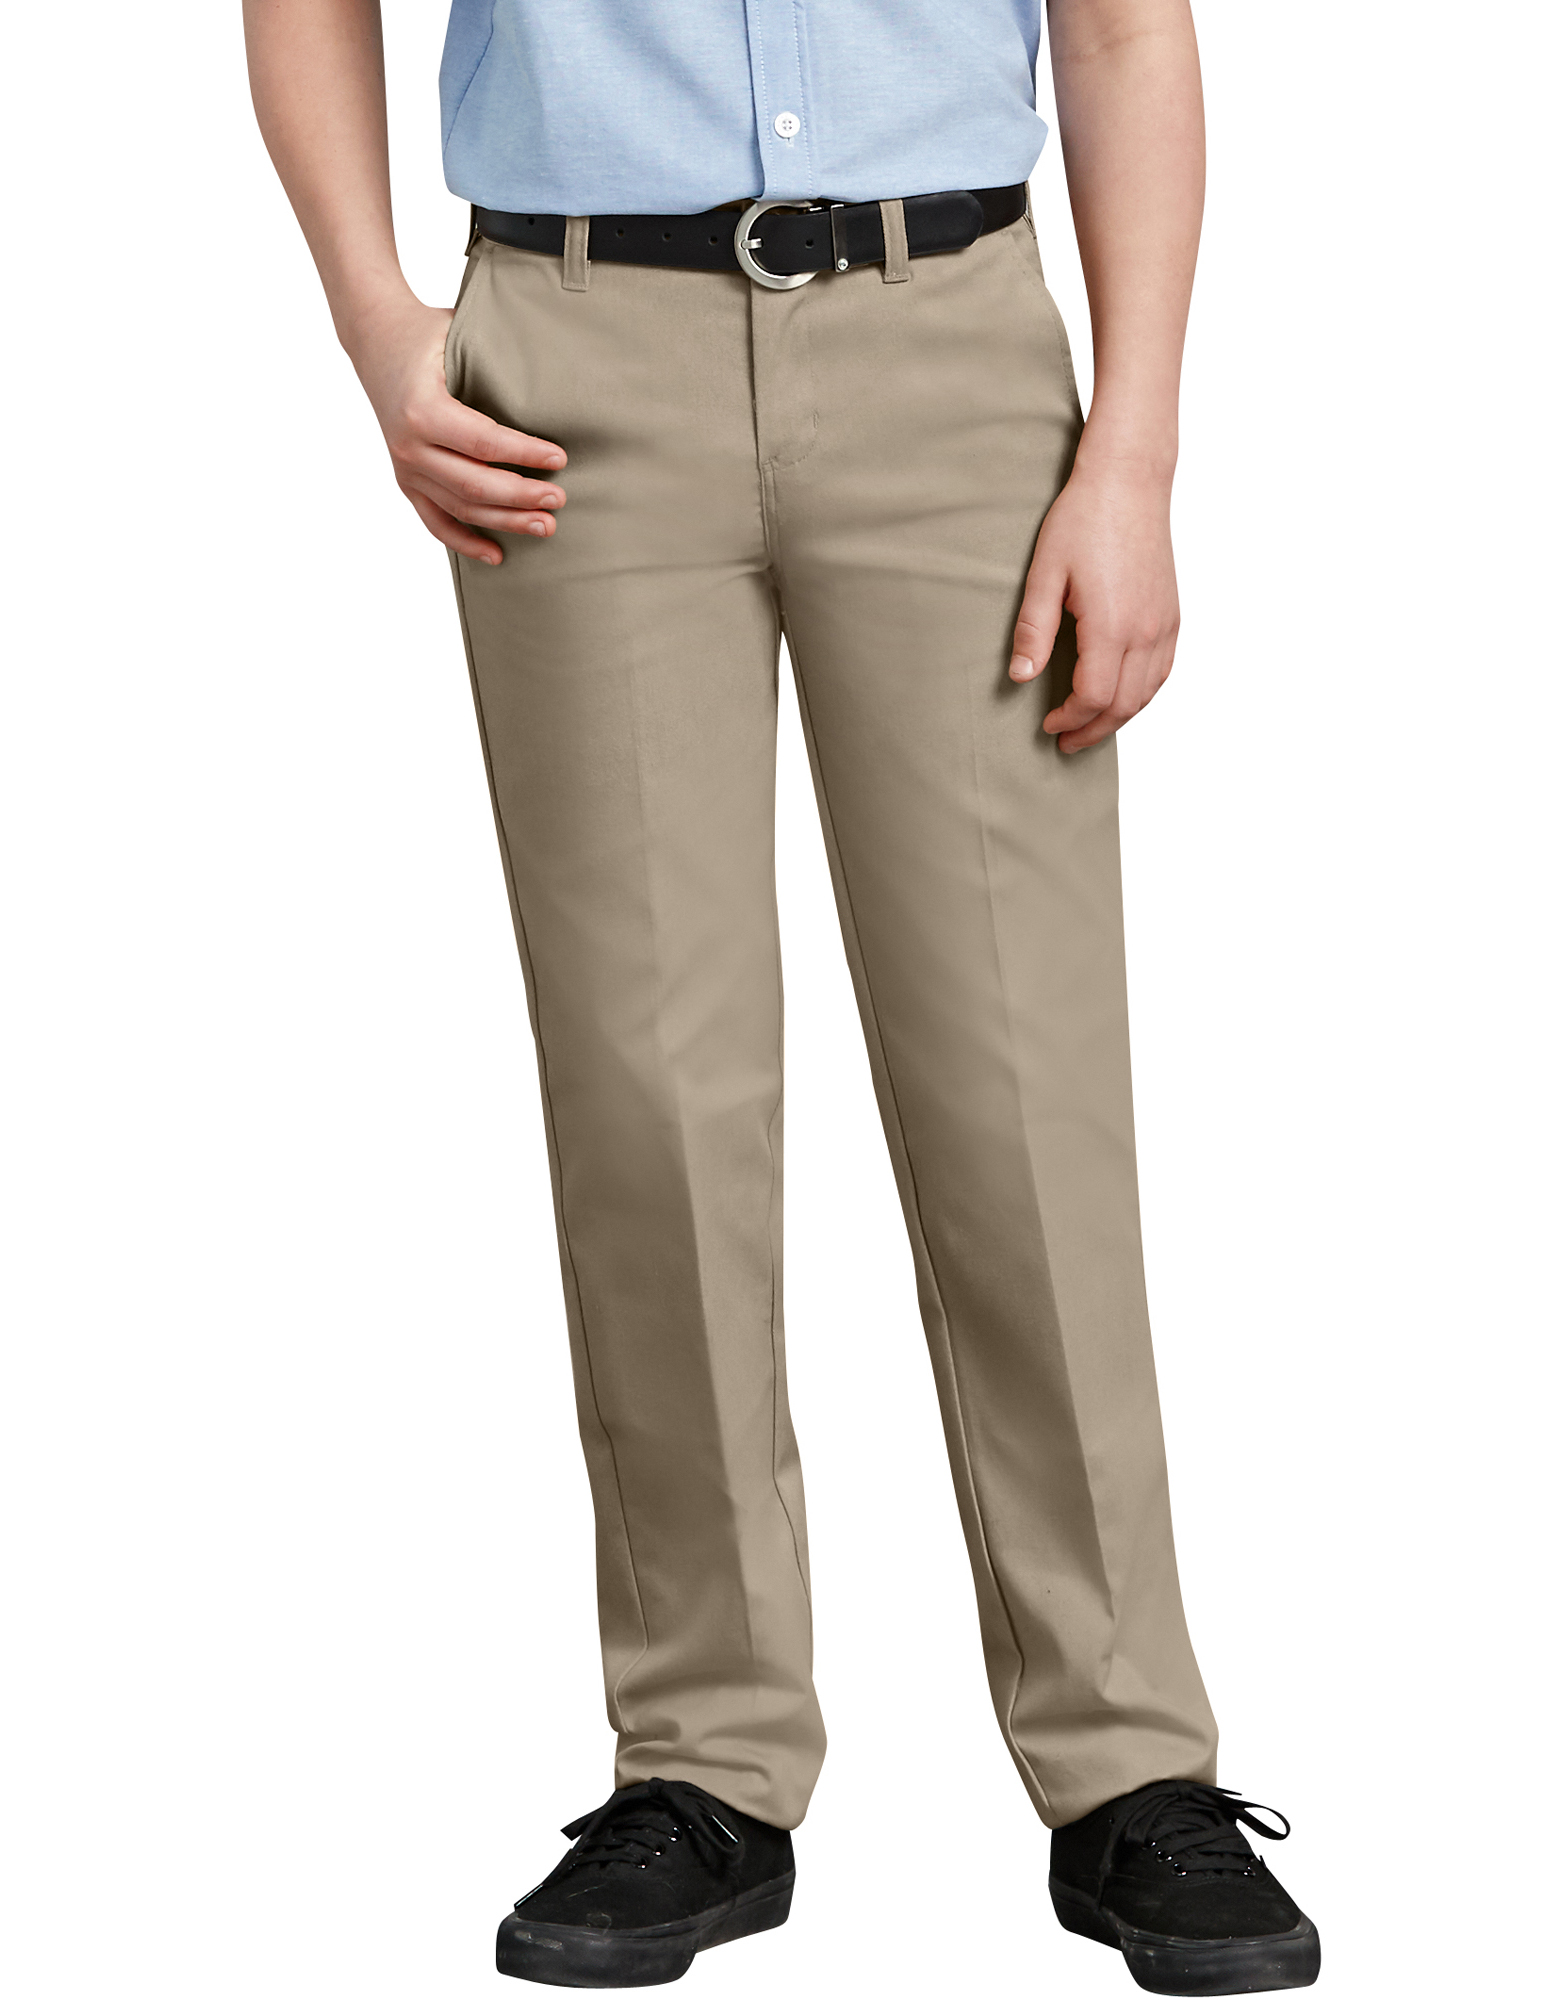 Boys' FlexWaist® Slim Fit Straight Leg Ultimate Khaki Pants, 4-7 - Desert Khaki (DS)